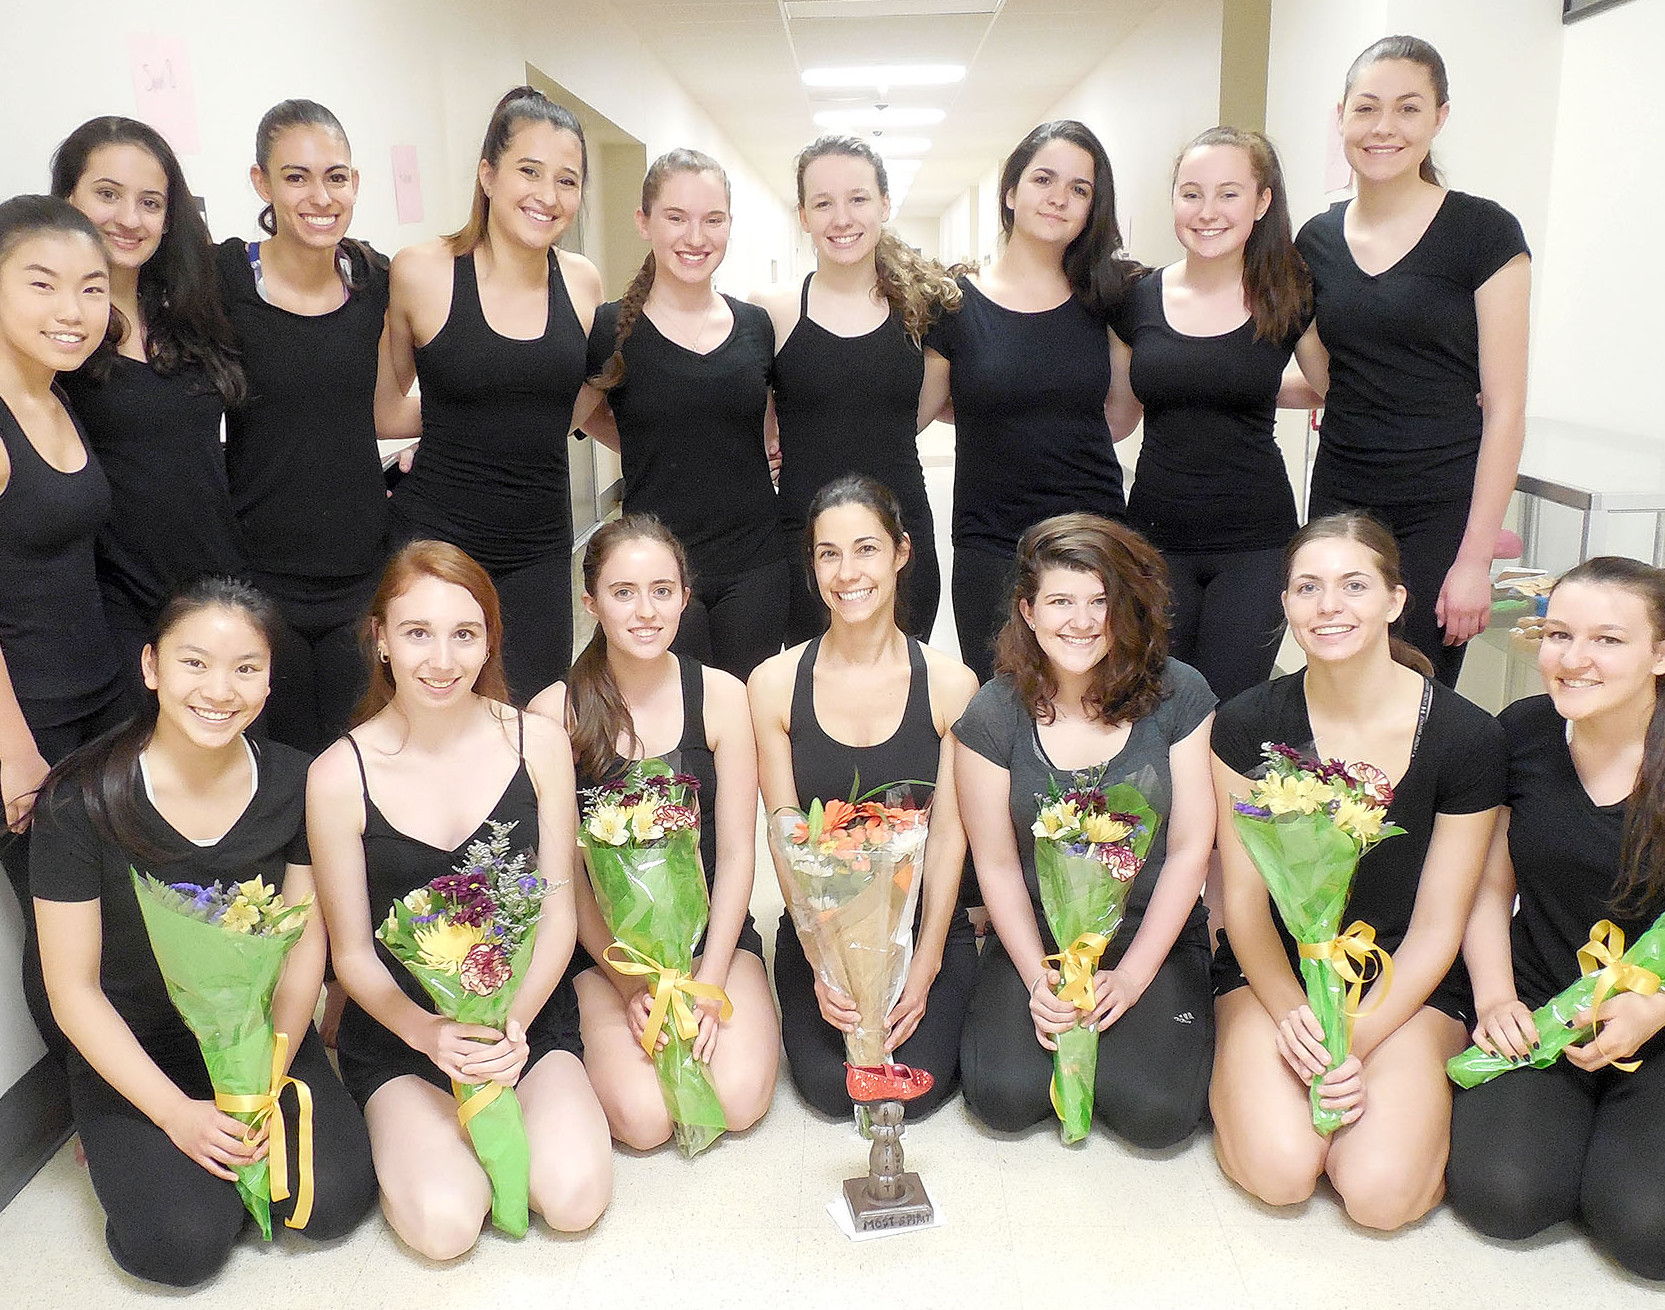 (above, kneeling, l-r) Students Michelle Shui, Lauren Loesberg, and Kaitlyn Santucci, Dance Teacher Marisa Toshi, and students Anna Paterson, Morgan Pravato, and Molly Garyantes. (standing, l-r) Students Michelle Du, Victoria Pantagis, Michelle Sucre, Dena Vayas, Katey Berger, Arielle Ostry, Sevoula Tsivgas, Sabrina Lane, and Camryn Graf.